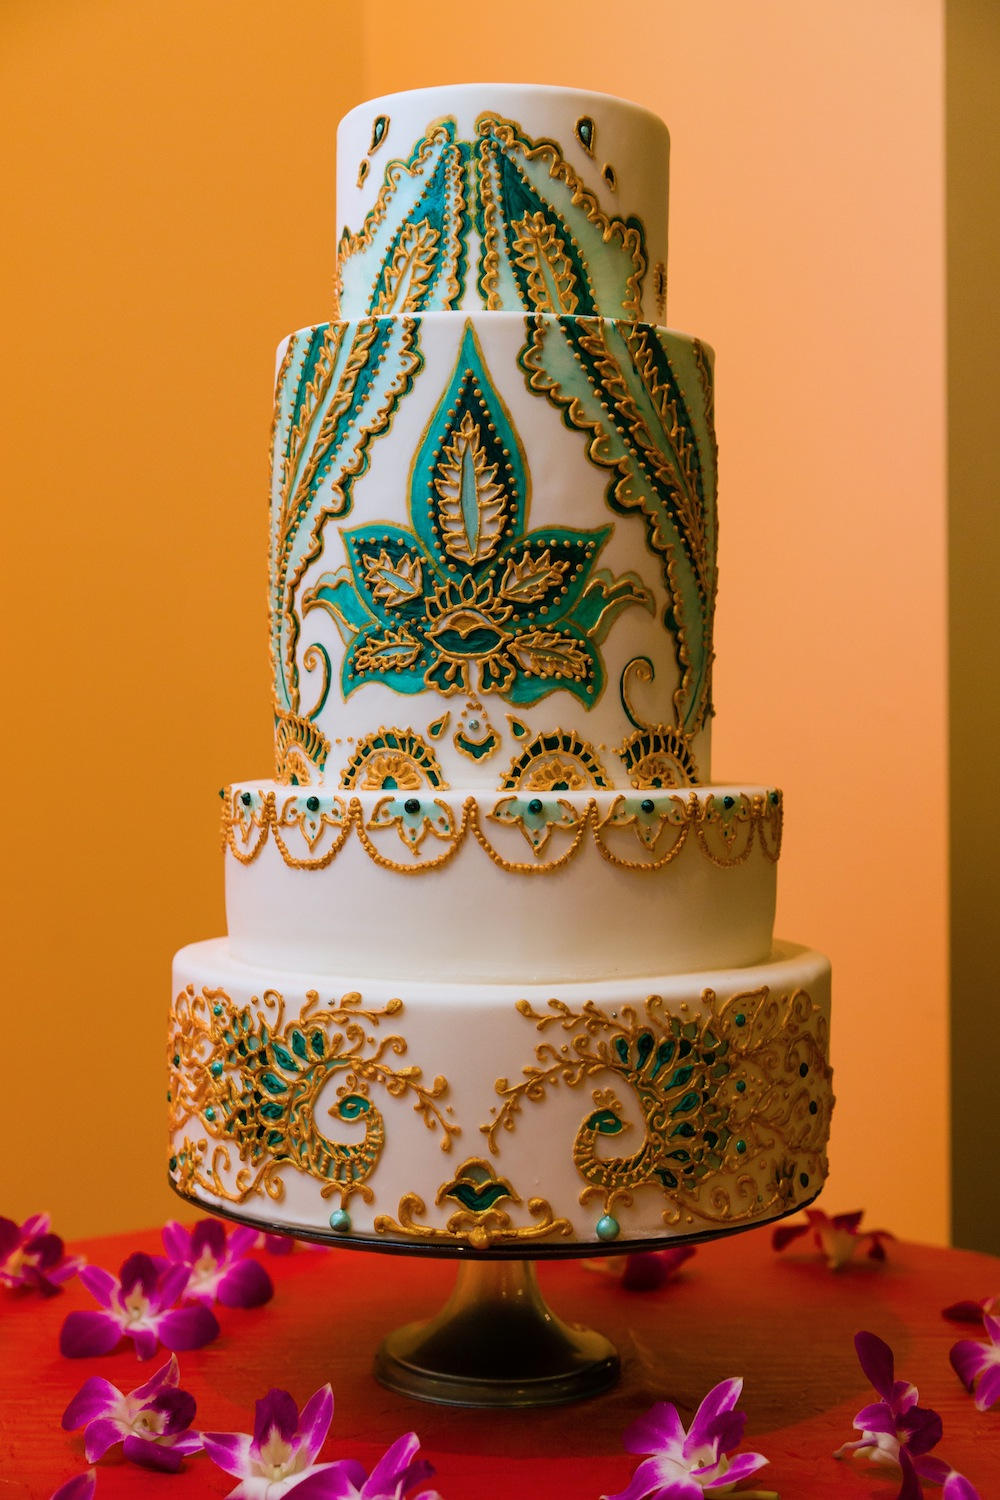 Indian inspired wedding cake with detailed henna designs created by wedding cake designer Kristen Cold Welcome our New In-House Wedding Cake Designer: Kristen Cold Welcome our New In-House Wedding Cake Designer: Kristen Cold 2013nov15 wedding djd0024